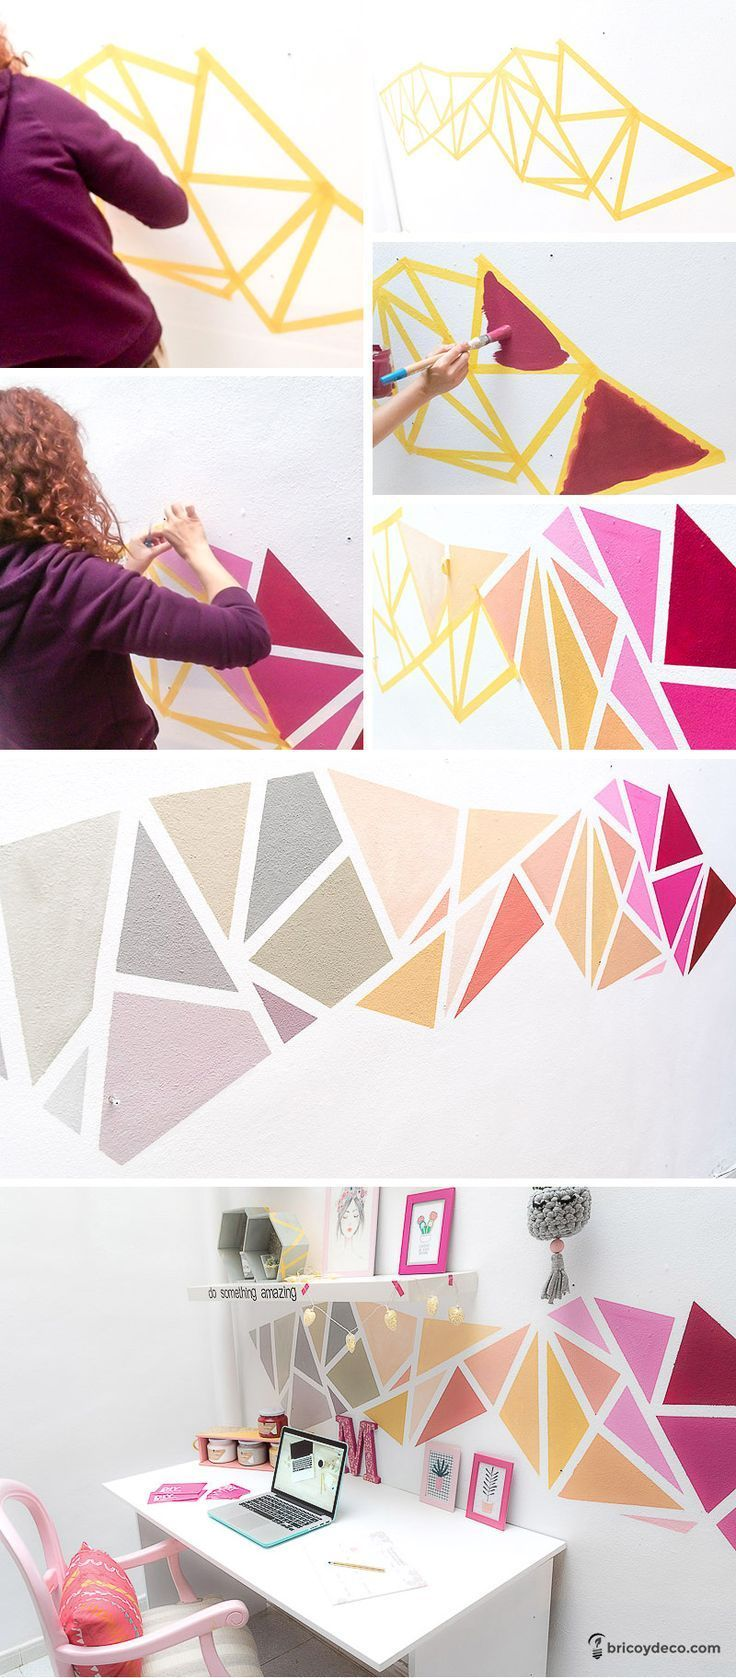 Decoración geométrica de pared paso a paso #geometric #decor #pintura #washi - #decoracion #homedecor #muebles